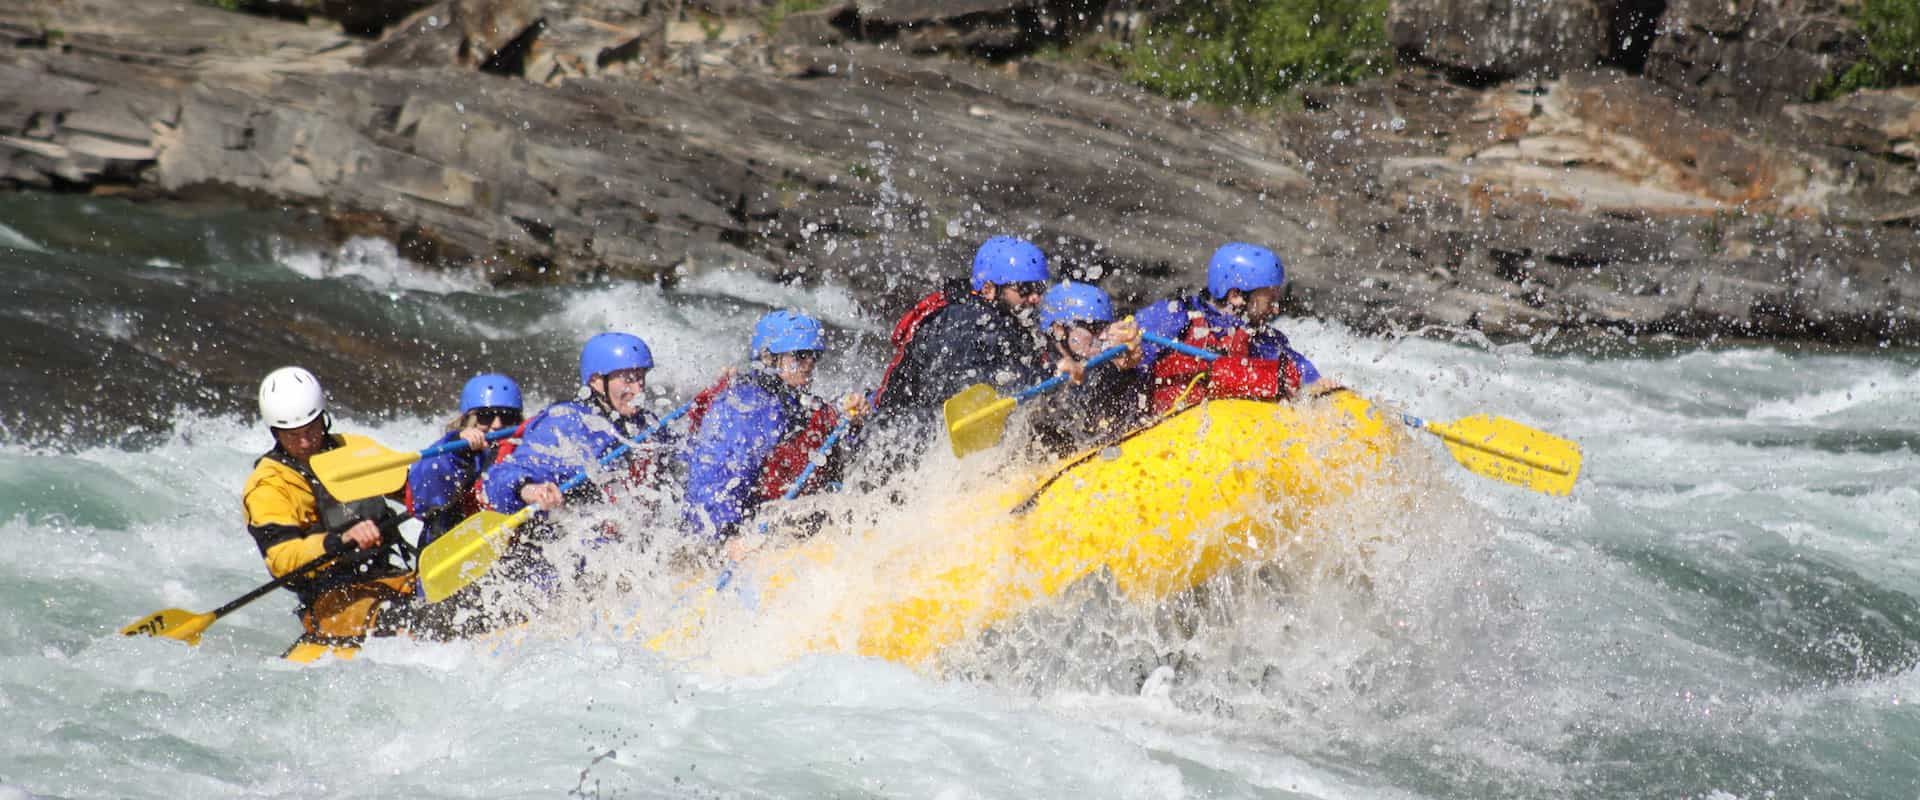 Class 4 rapids on the Horseshoe Canyon section of the Bow River with Chinook Rafting in the Canadian Rockies